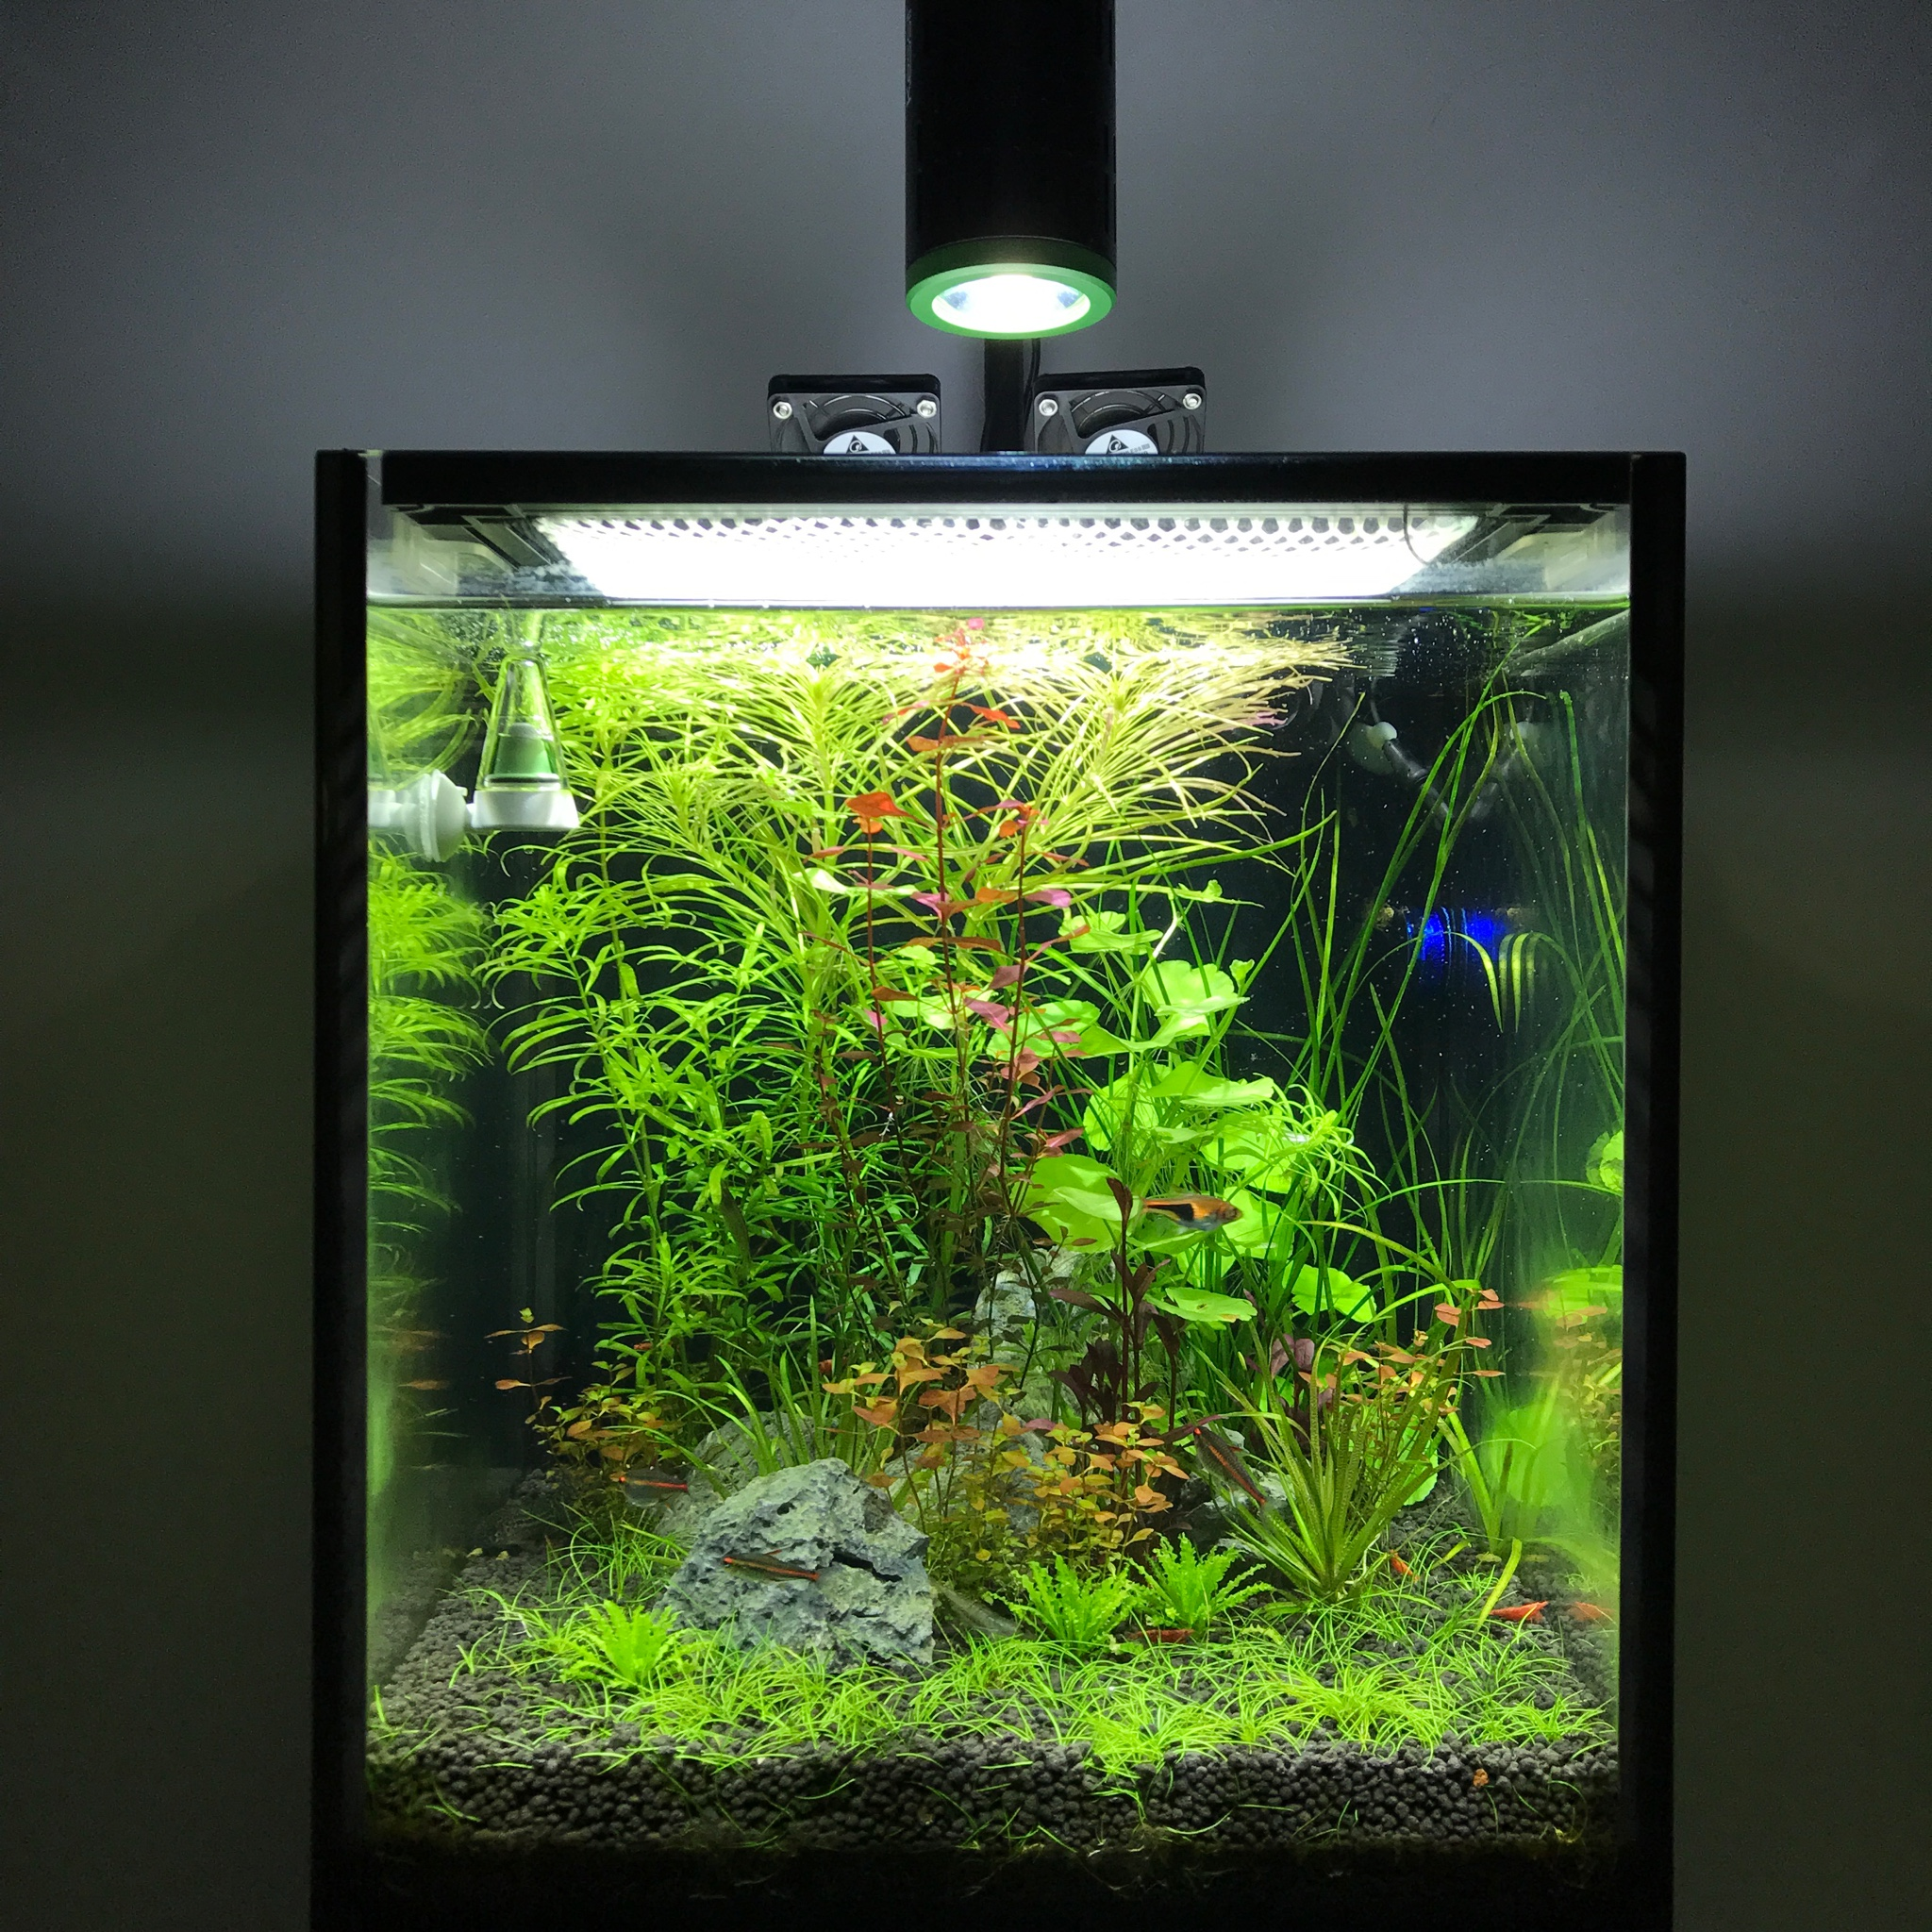 10 gallon nano planted tank page 2 the planted tank forum. Black Bedroom Furniture Sets. Home Design Ideas